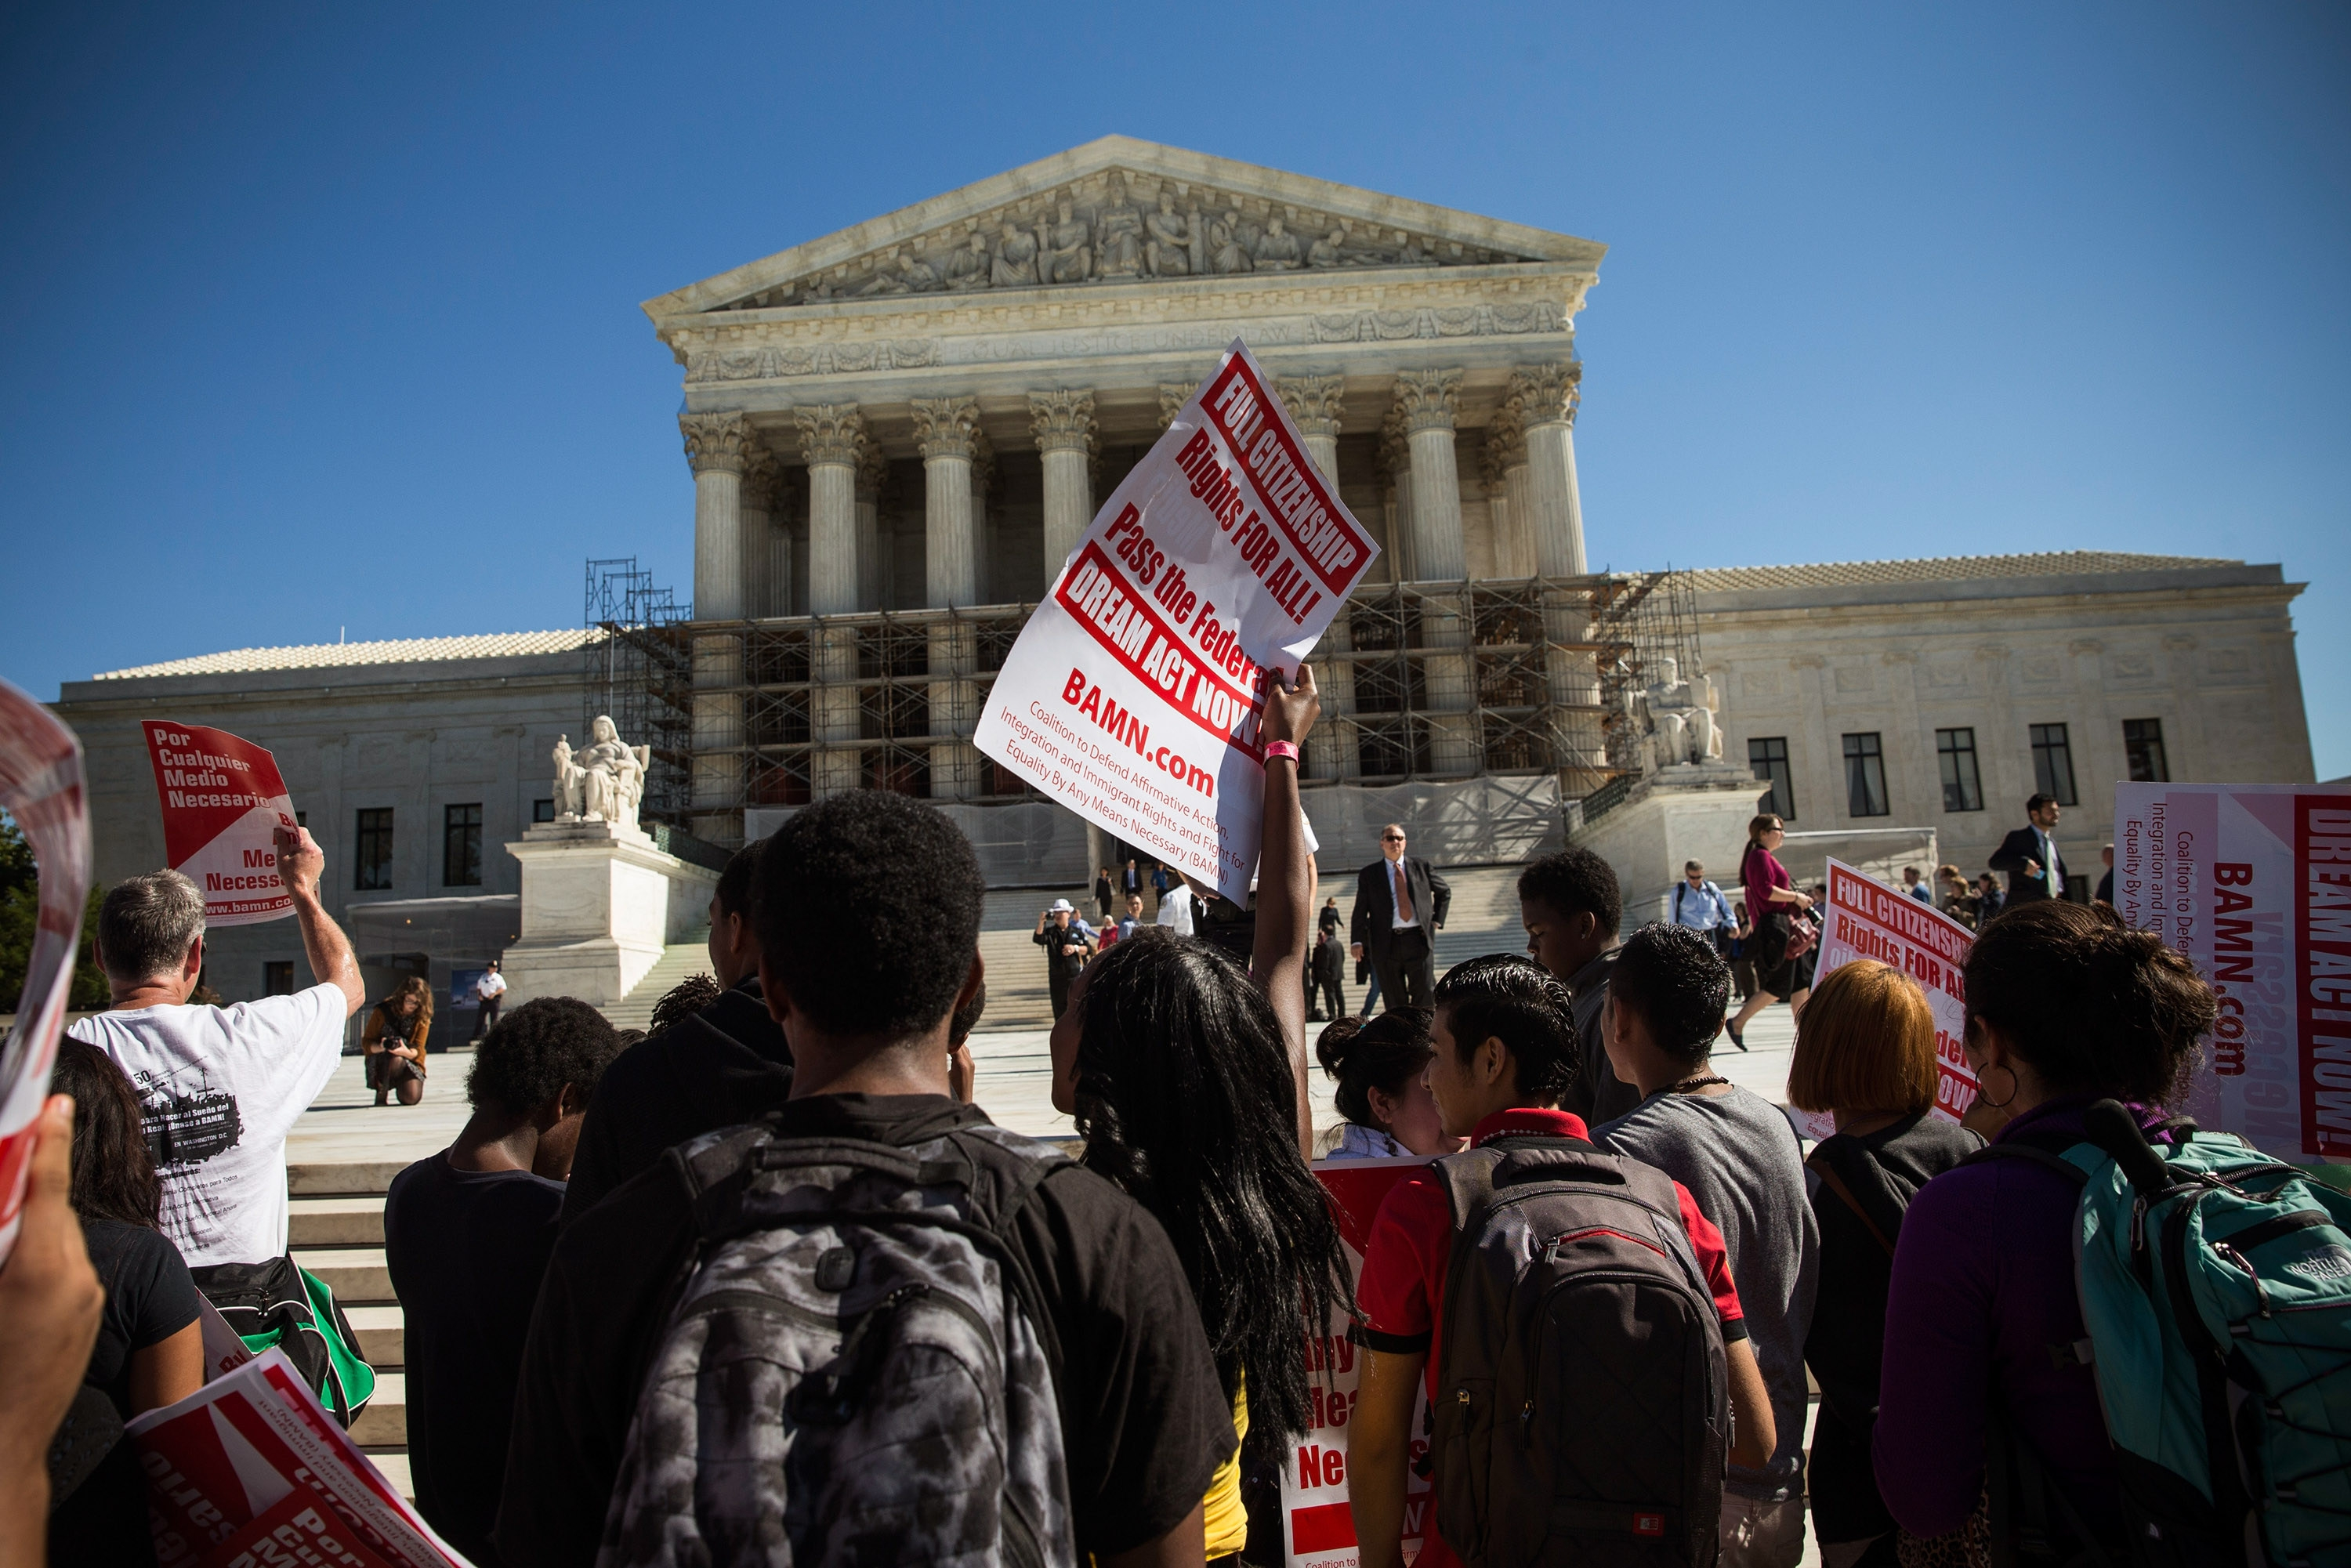 Supporters of affirmative action rallied outside the Supreme Court earlier this week as the justices heard arguments in Schuette v. Coalition to Defend Affirmative Action. (AP photo)